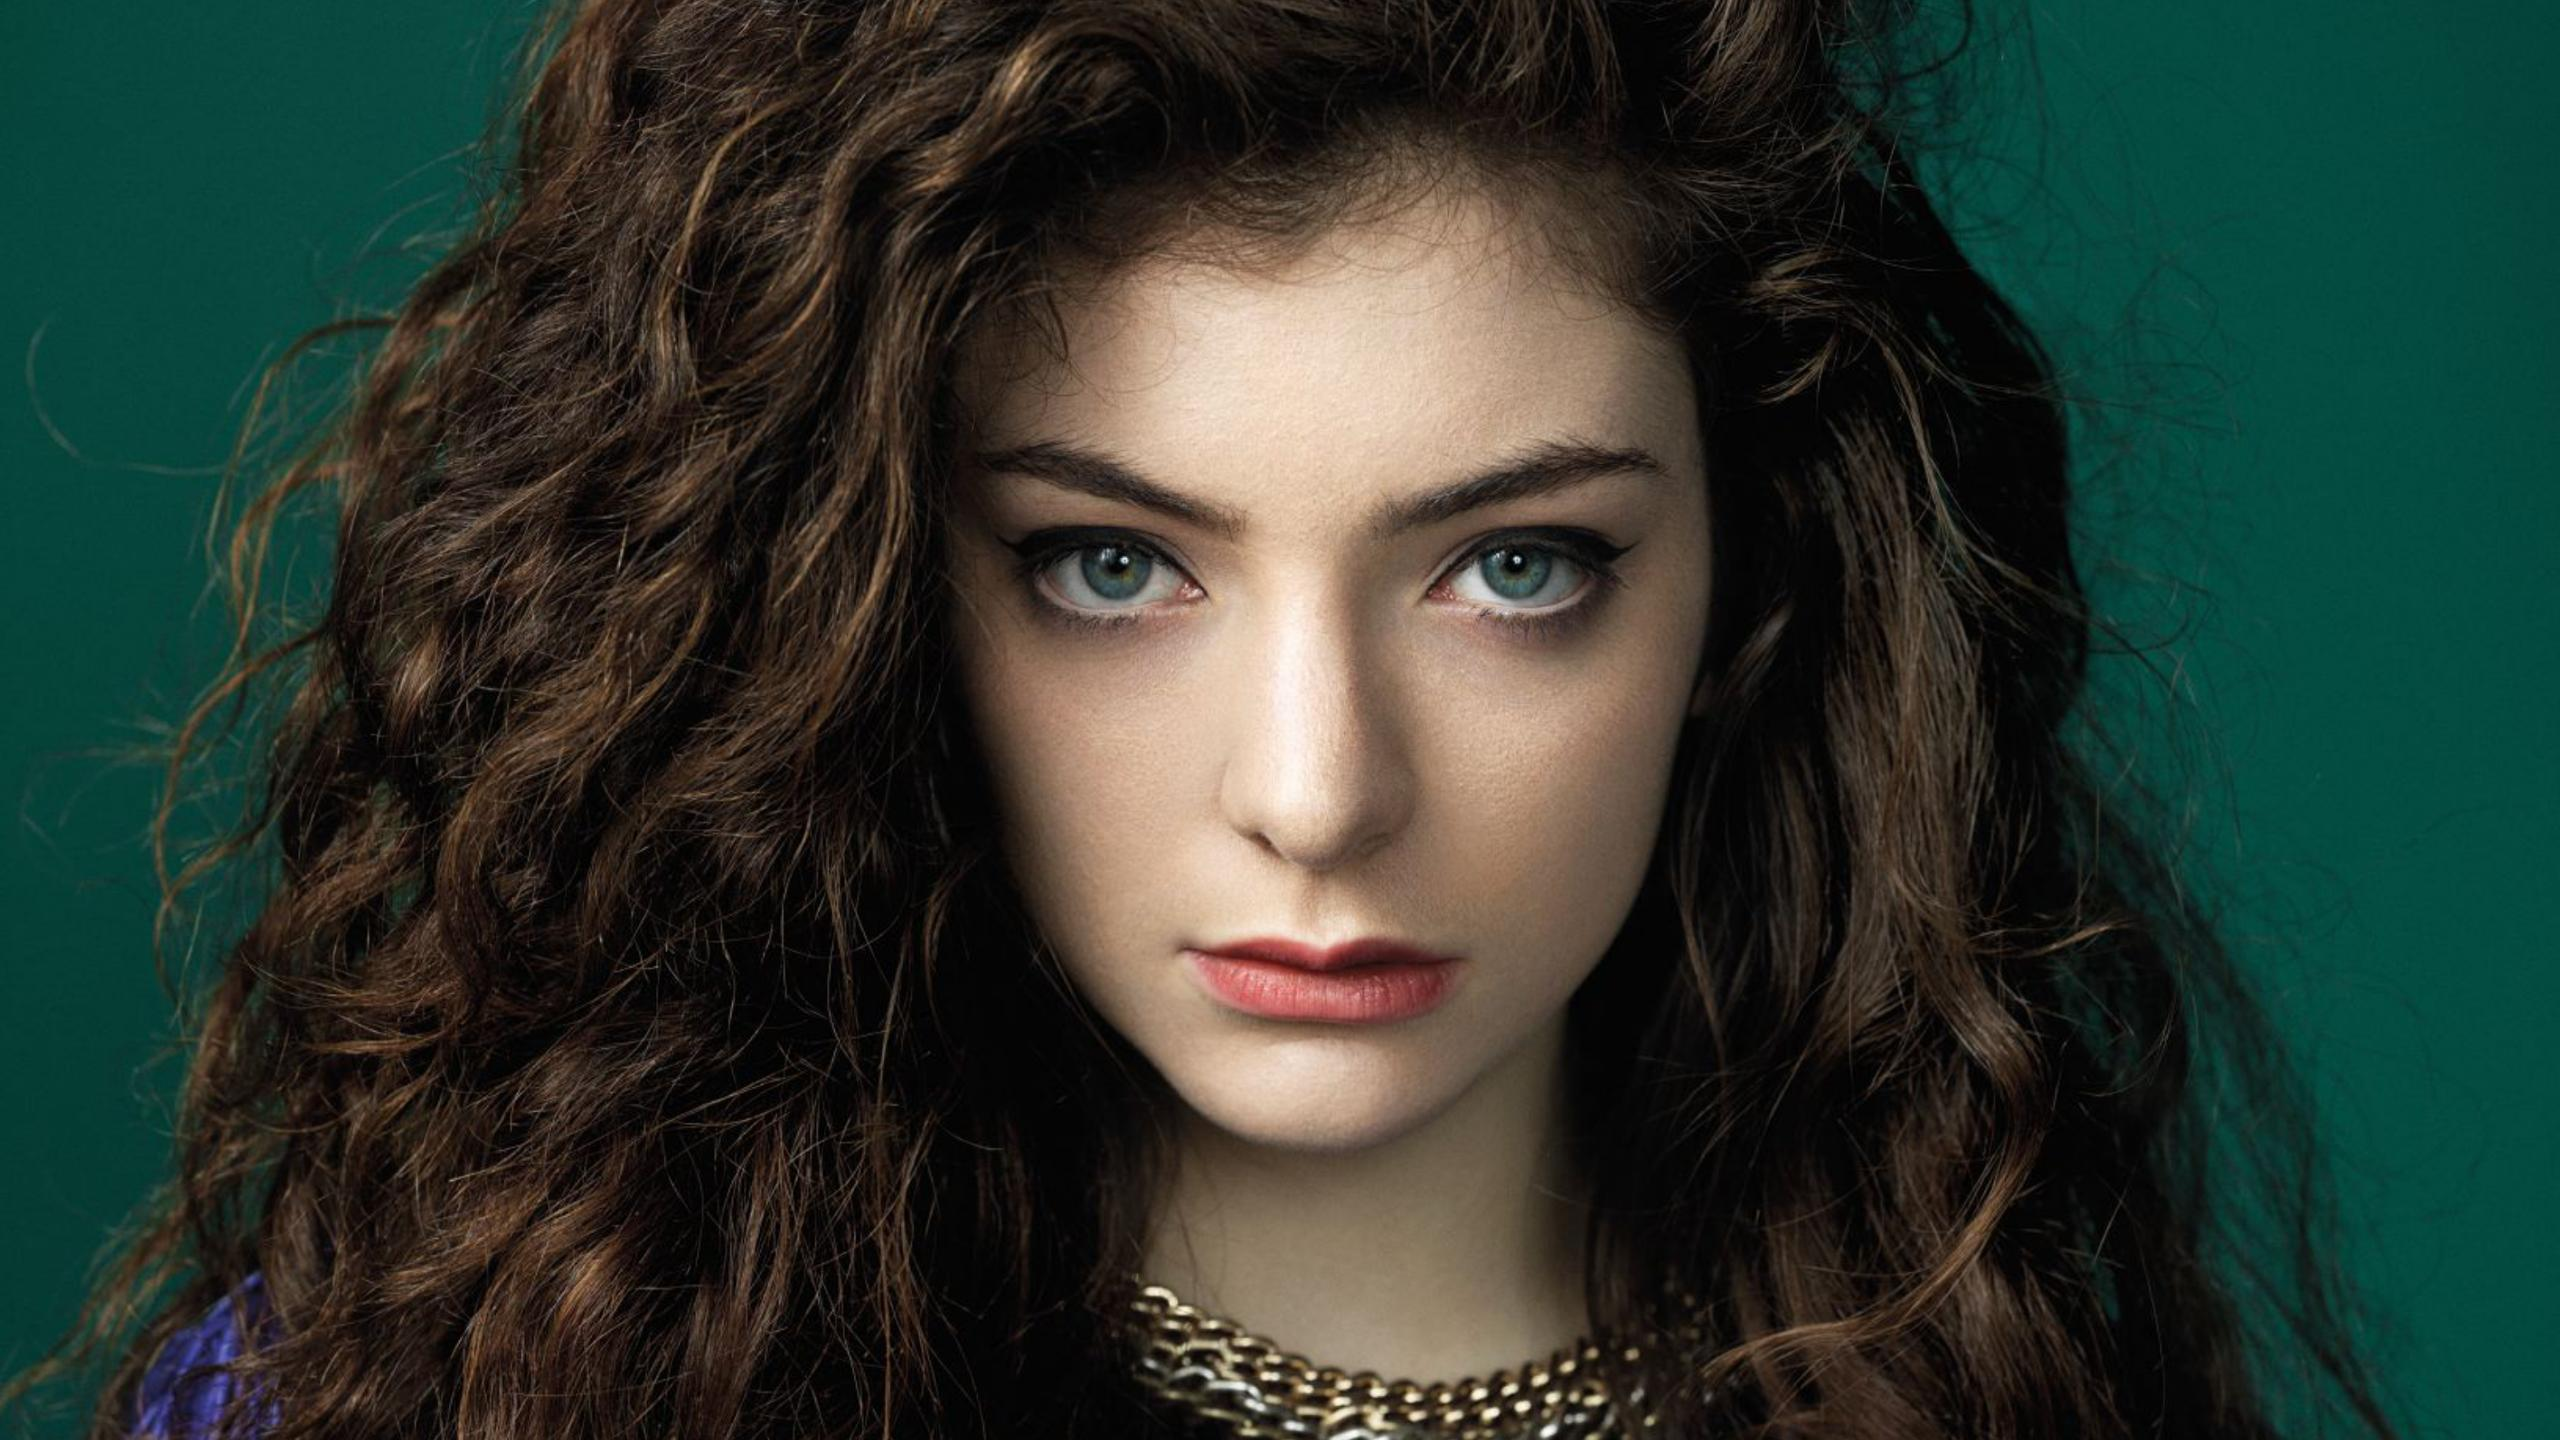 Beautiful Girl Hd Wallpapers 1080p Download Lorde Wallpapers High Quality Download Free